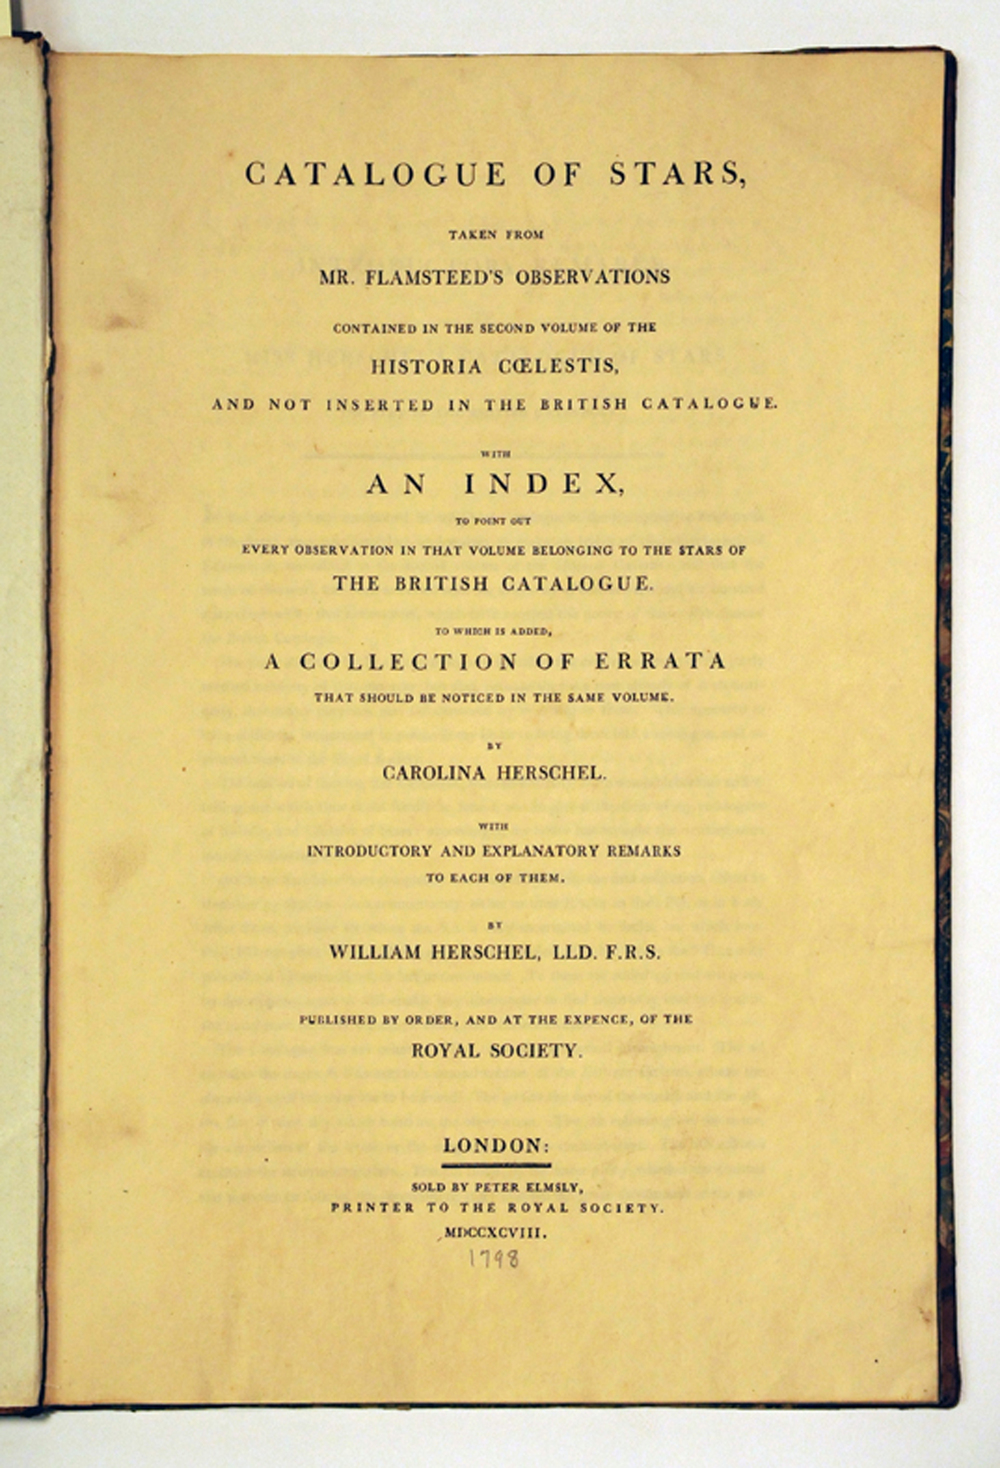 Title page from Caroline Herschel's Catalogue of Stars Taken from Mr. Flamsteed's Observations. London: Royal Astronomical Society, 1798 (Adler Collection, QB6 .H42 1798).